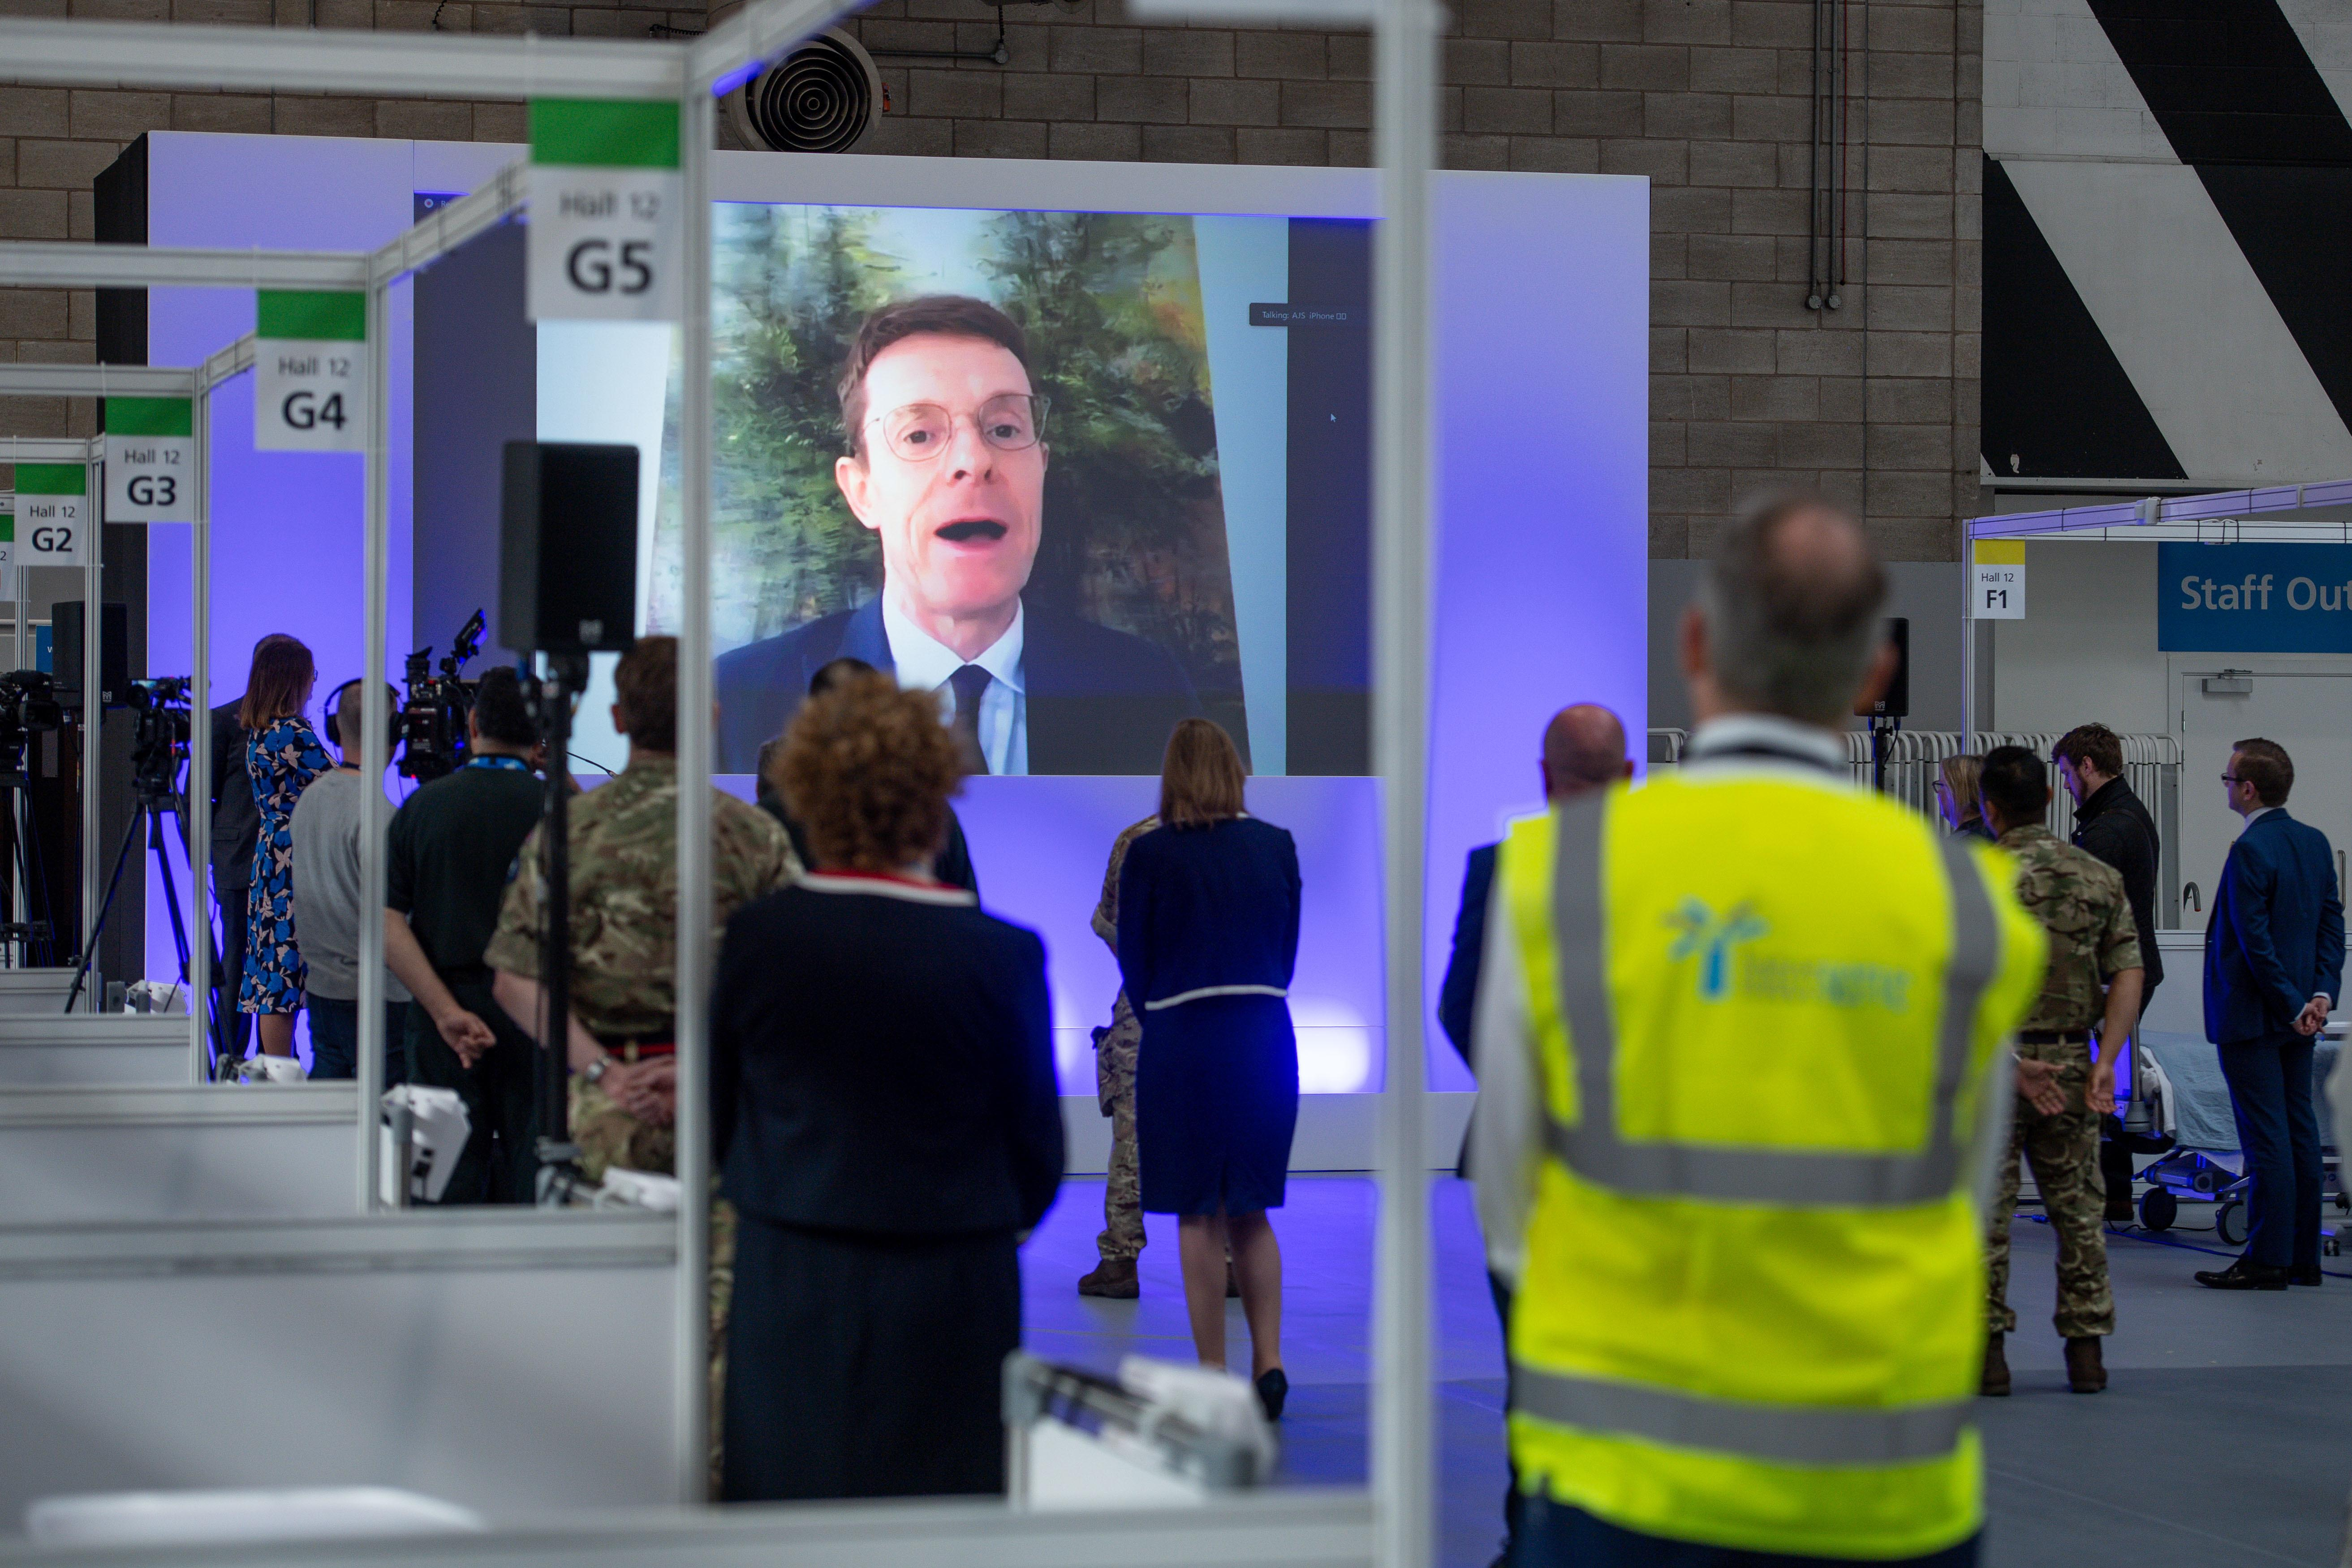 EMBARGOED TO 1330 Thursday April 16, 2020. West Midlands Mayor Andy Street speaks via videolink at the opening of the NHS Nightingale Hospital Birmingham, in the National Exhibition Centre (NEC).